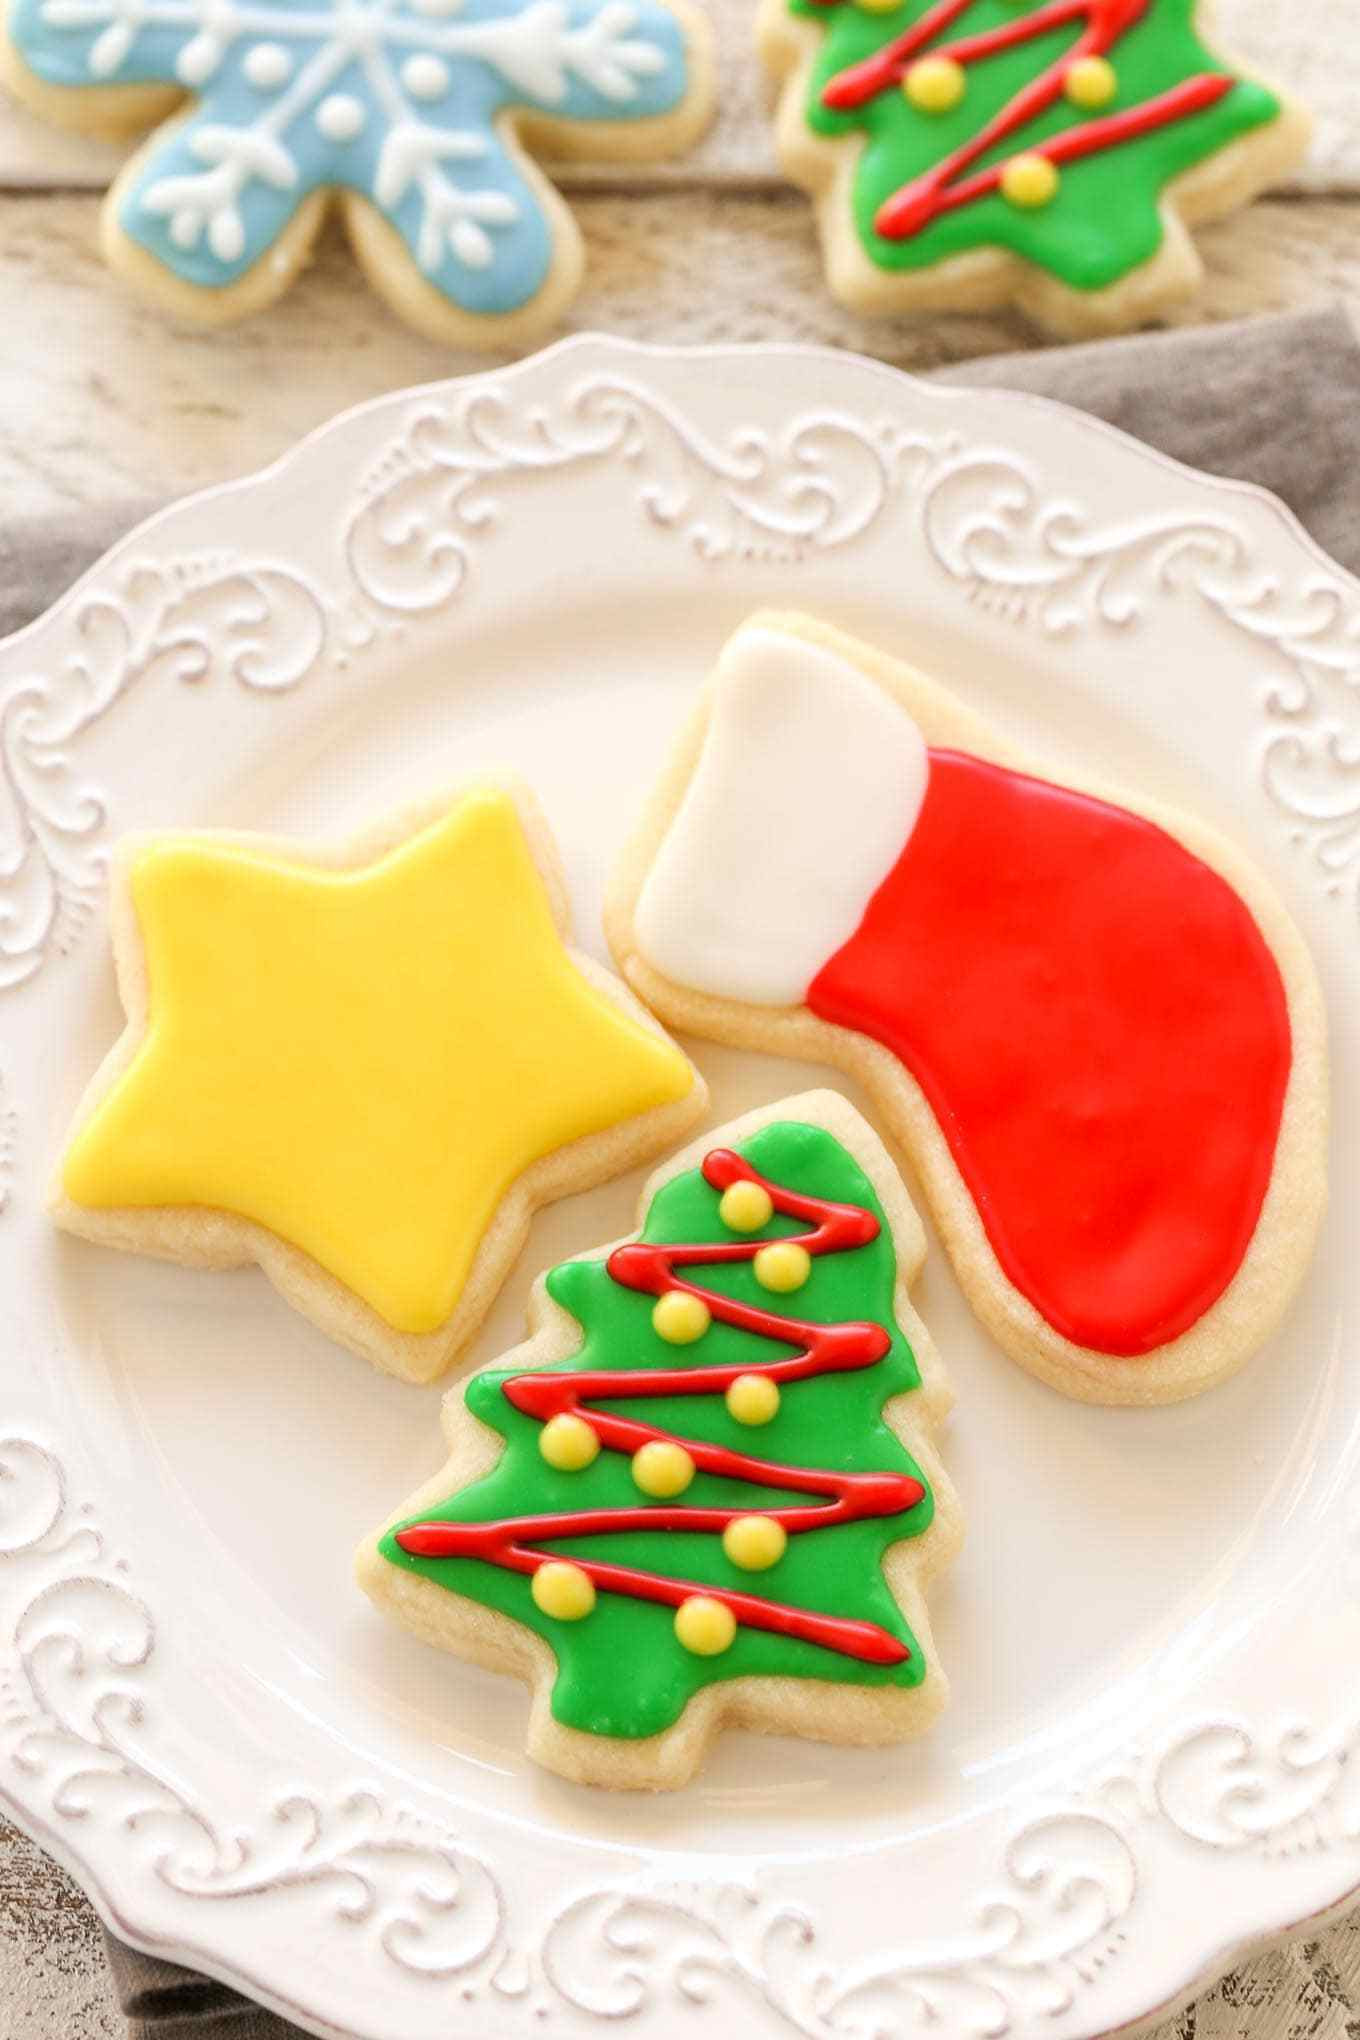 Sugar Christmas Cookies  Soft Christmas Cut Out Sugar Cookies Live Well Bake ten